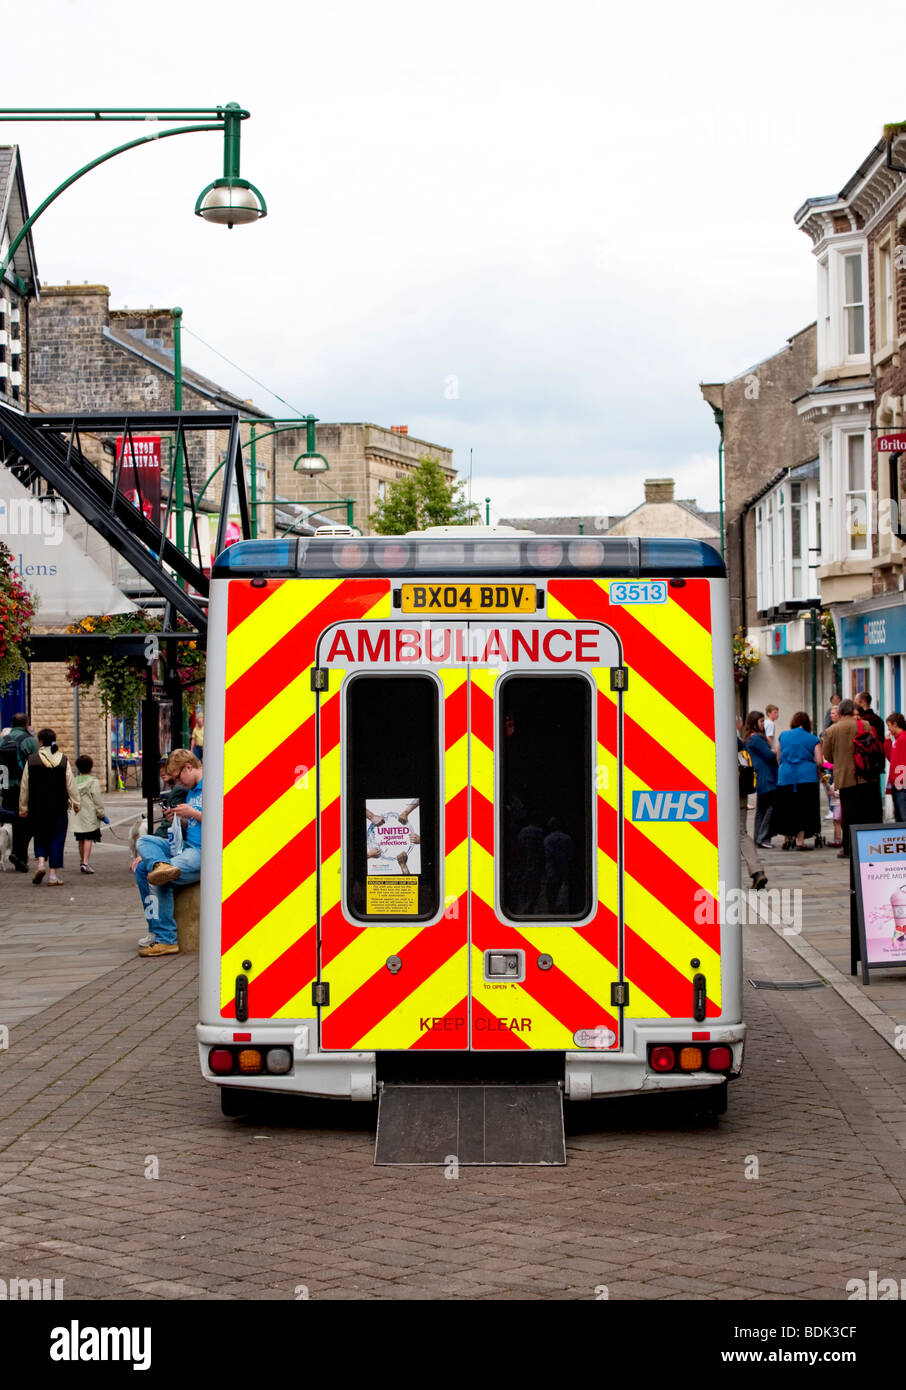 Back view of Ambulance parked in a pedestrian precinct in Buxton, Derbyshire - Stock Image